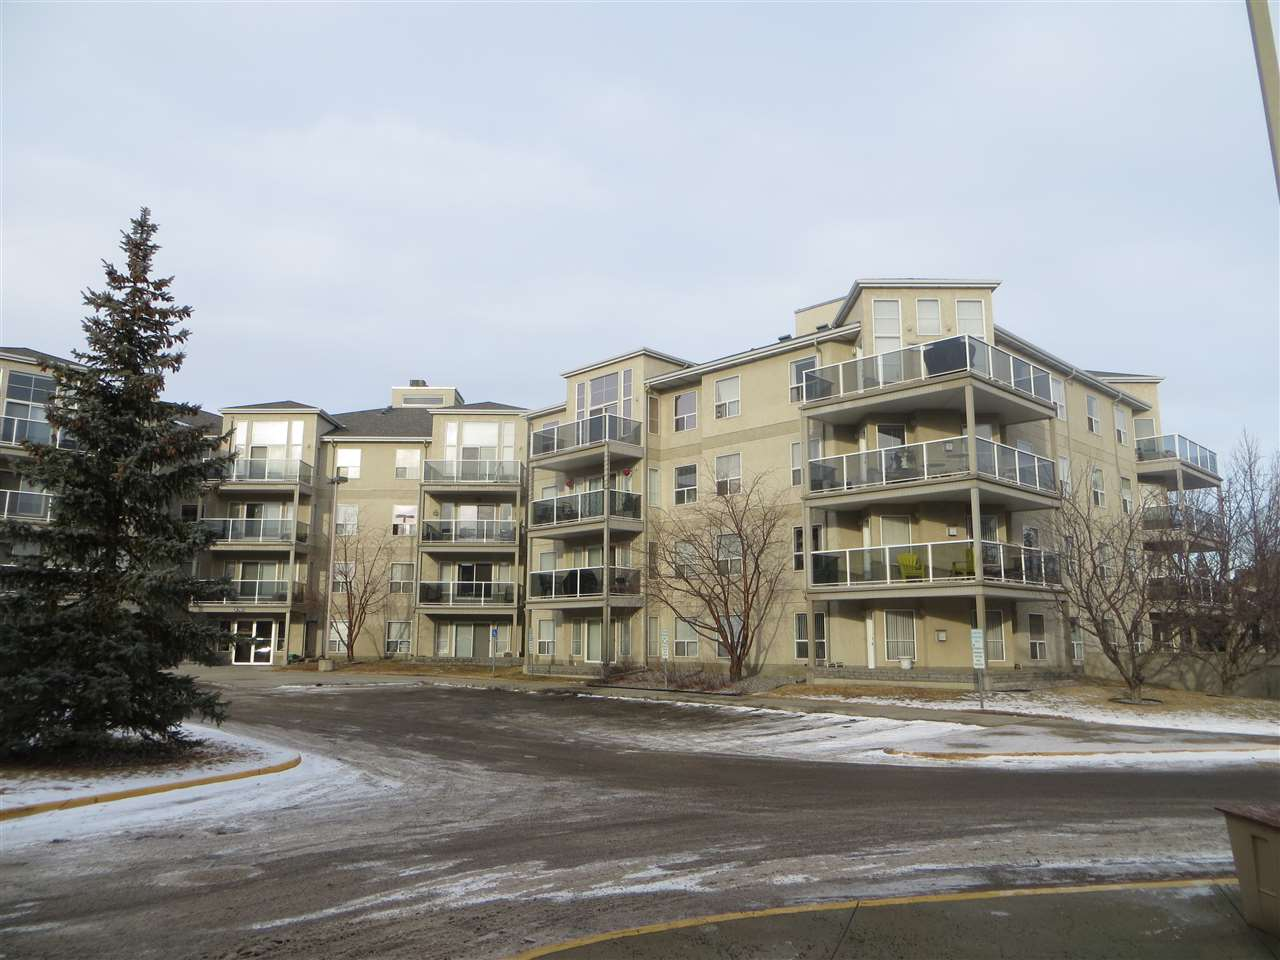 Corner unit with wrap around balcony! Enjoy morning coffees on the spacious balcony of this well priced larger 3rd floor unit featuring 960 sq ft.  Laminate and tile flooring welcome you into the home. The well designed kitchen is a good size with island eating bar, double sink, plus ample cabinets and counter space. There are two bedrooms, 2 bathrooms that both feature showers, closet organizers, air conditioning, gas fireplace, laundry area with some storage plus another storage cage downstairs in front of your underground parking stall (#222) that is titled.  Heated stall is located in a good location only a few steps from the elevator, plus the underground parking has a car wash!  The complex is located in convenient Terra Losa, close to shopping, transit and churches, plus the trails at the lake are nearby.